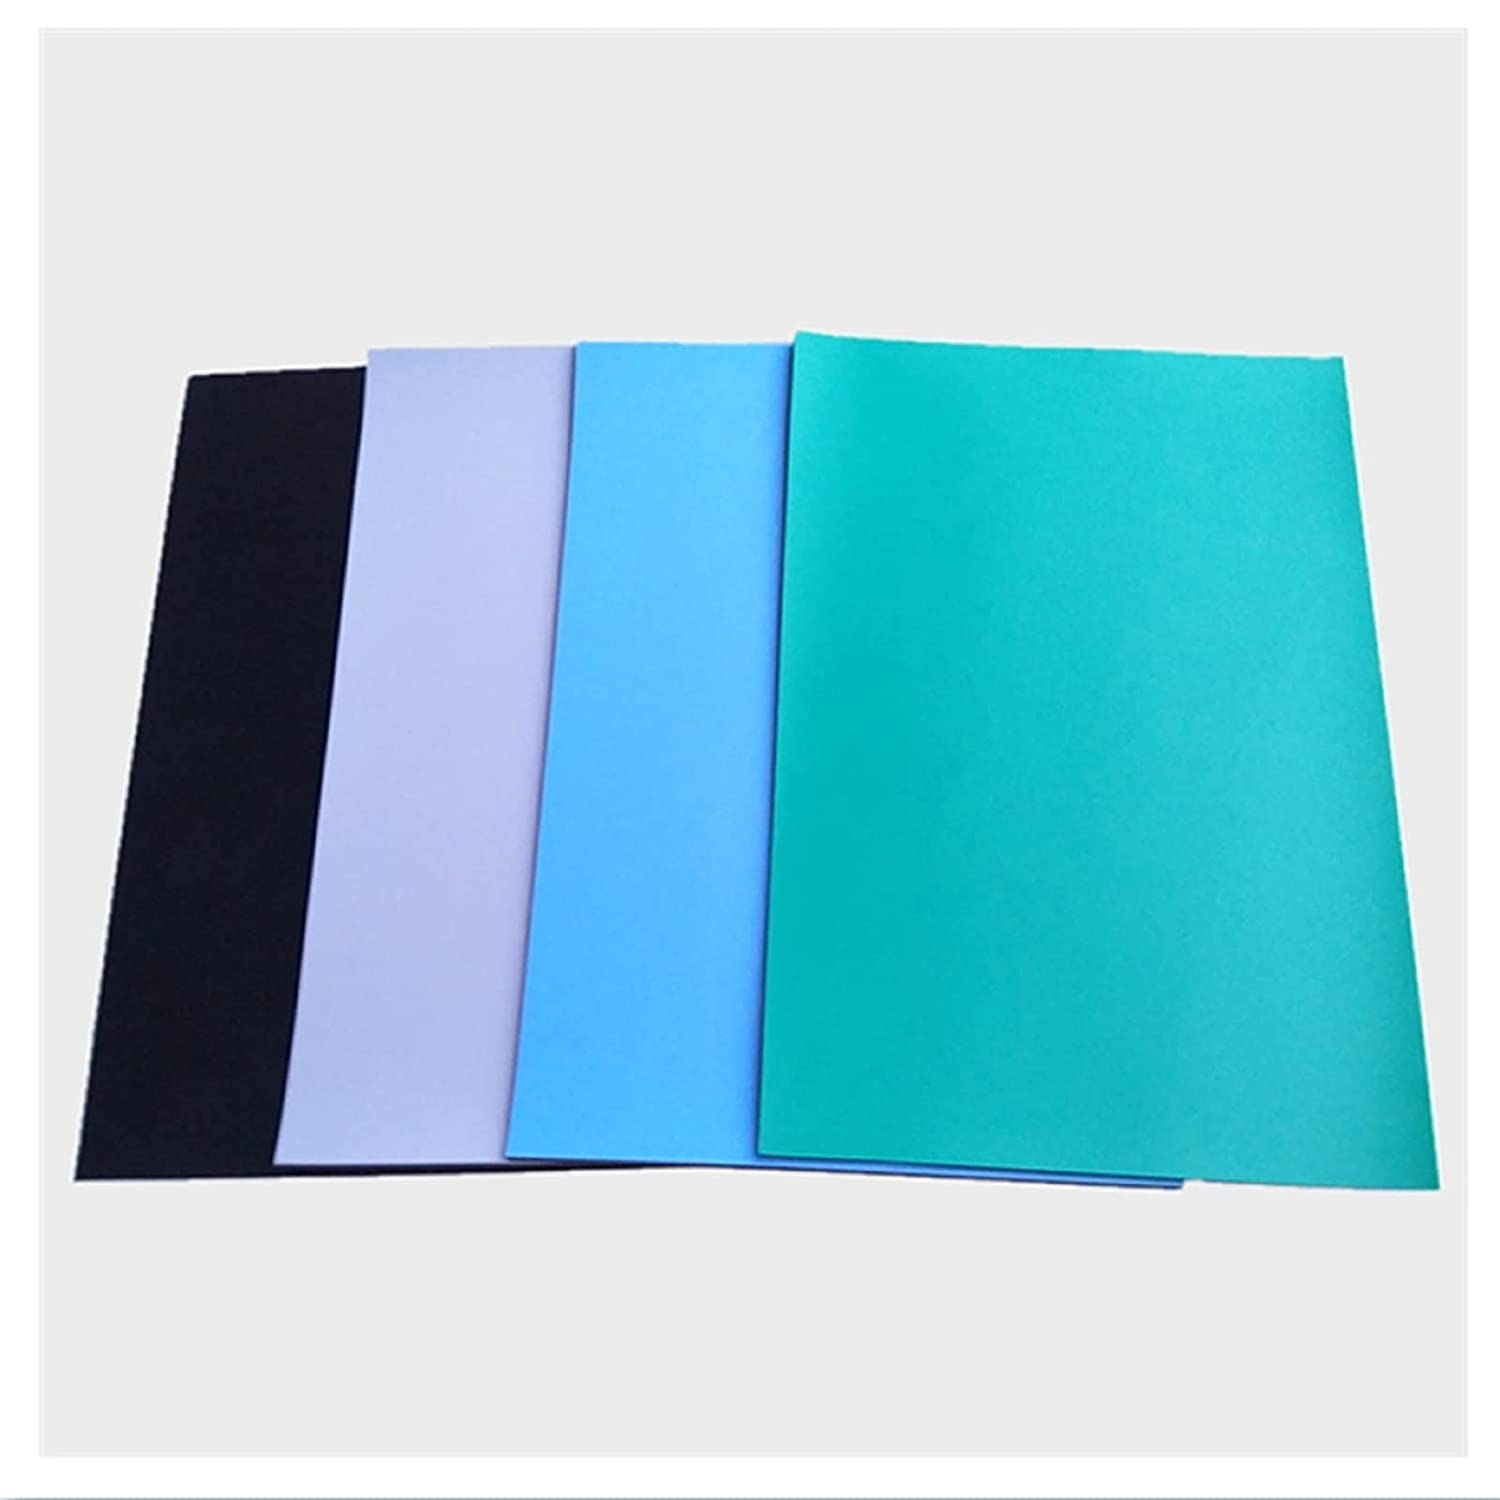 Bopaodao Blue Anti-Static Table Mat Anti-Acid Max 56% OFF Chemic famous Alkali and